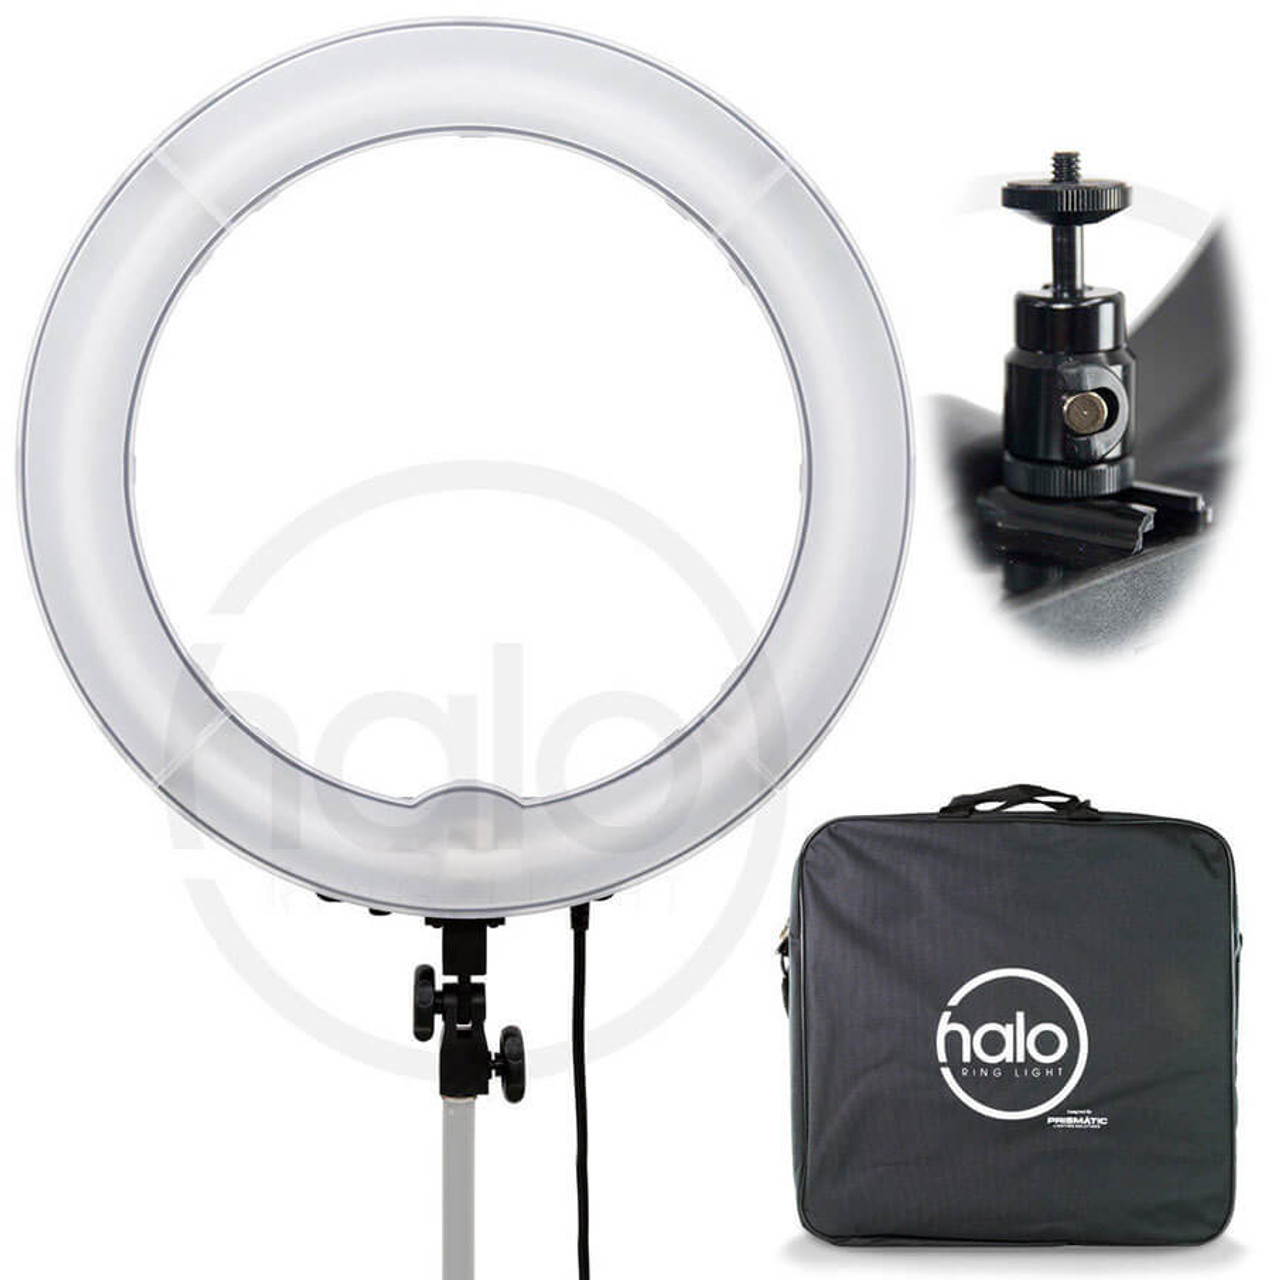 Prismatic Halo Ring Light Official Halo Reseller Dvestore